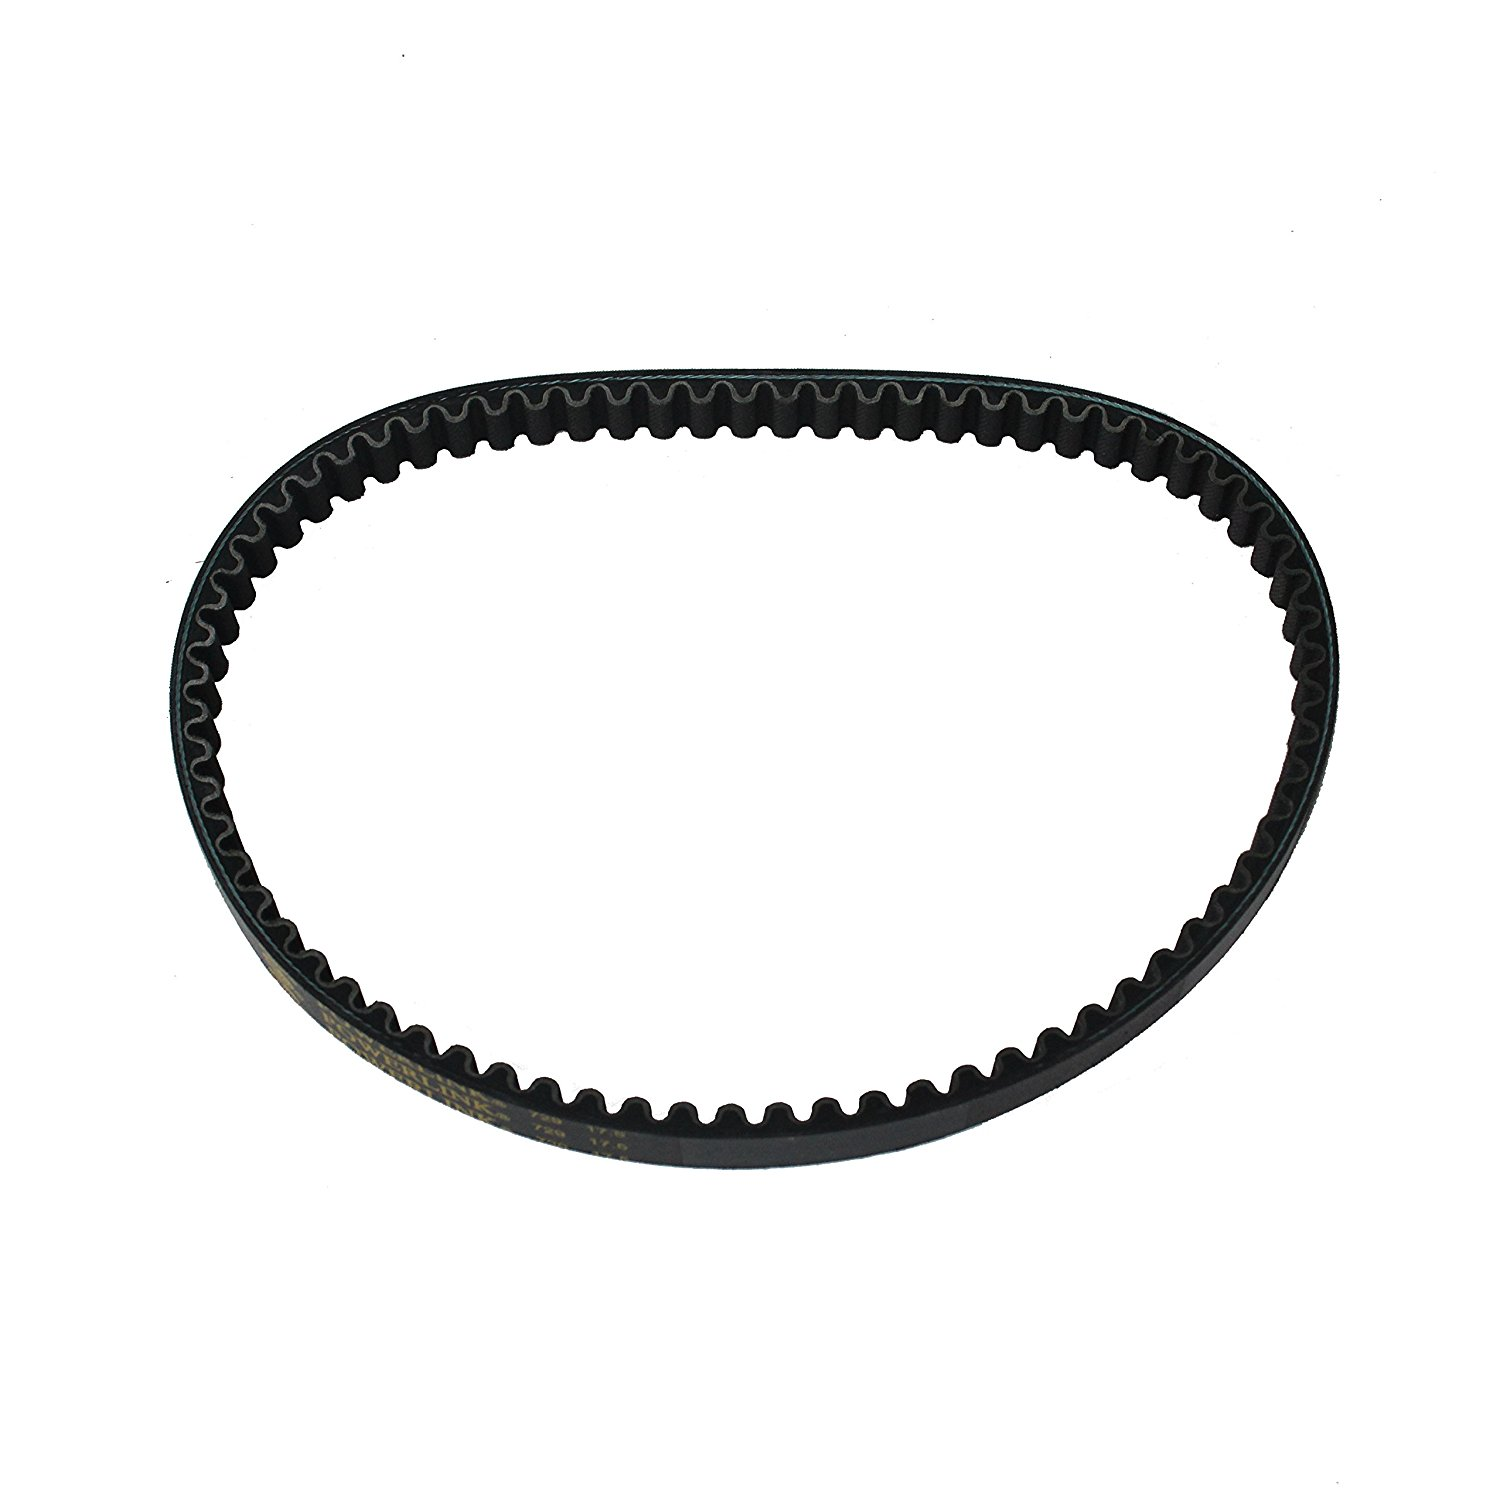 Buy Gates Powerlink 729 17 5 30 Cvt Drive Belt Long Case